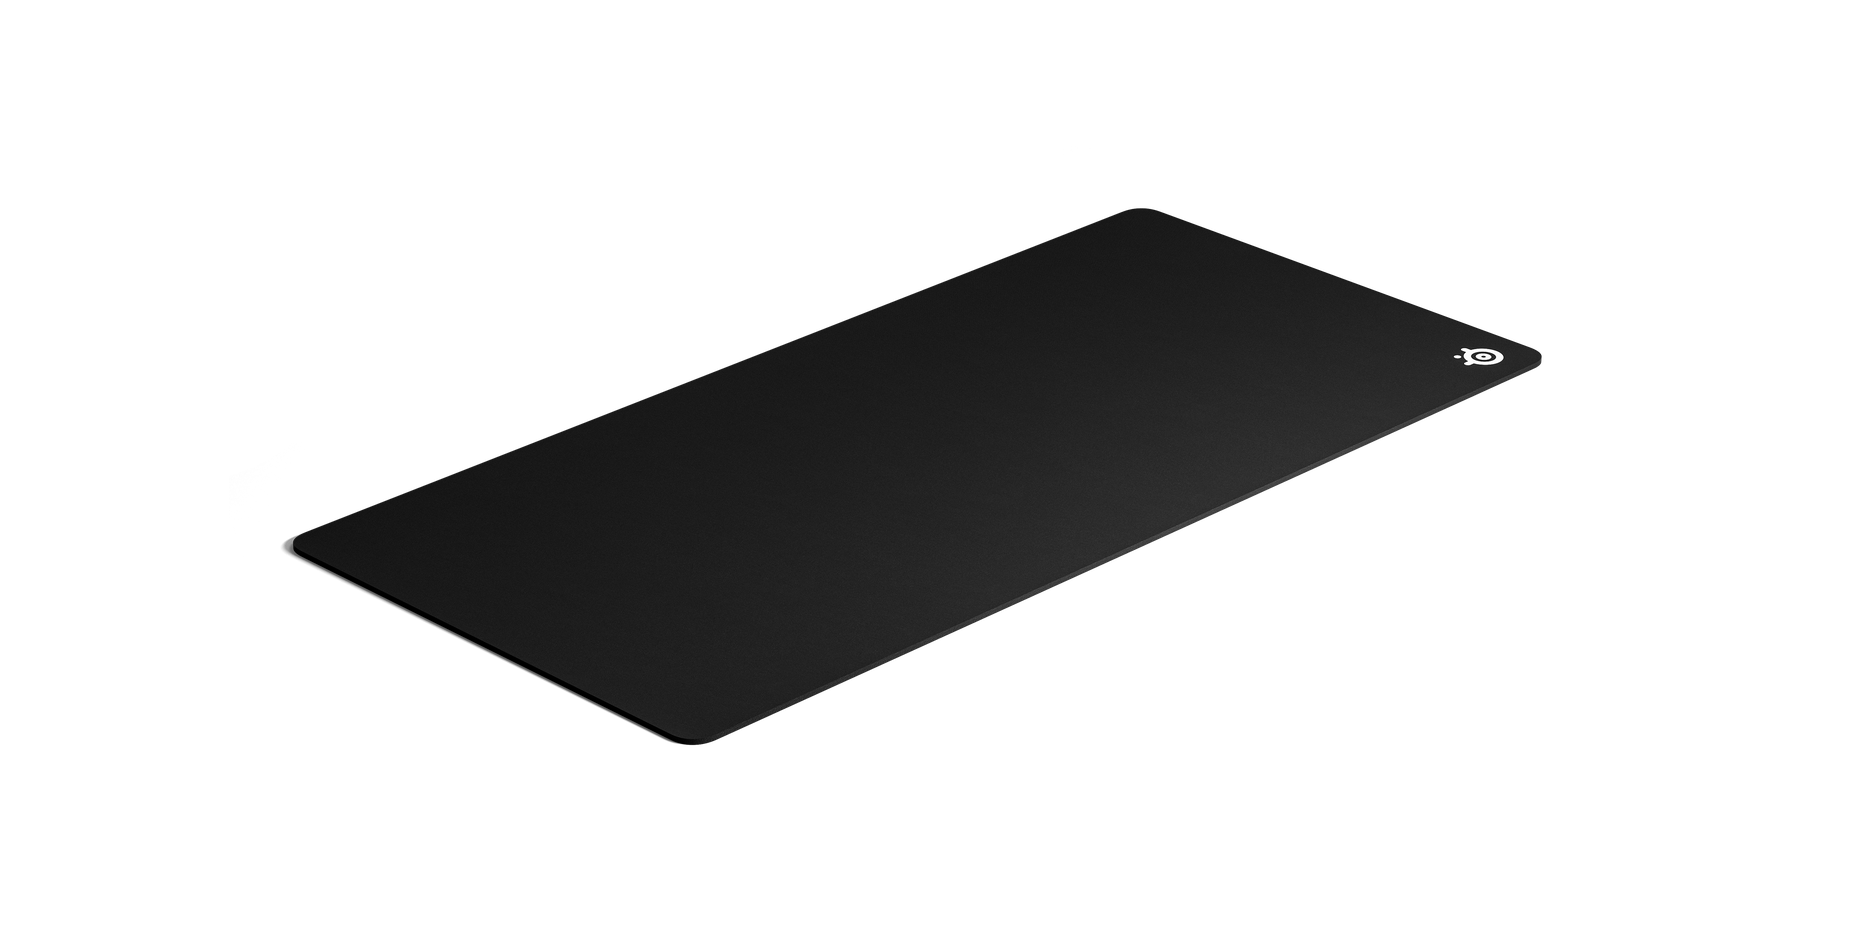 Mouse pad viewed from a quarter angle to show depth and sidings